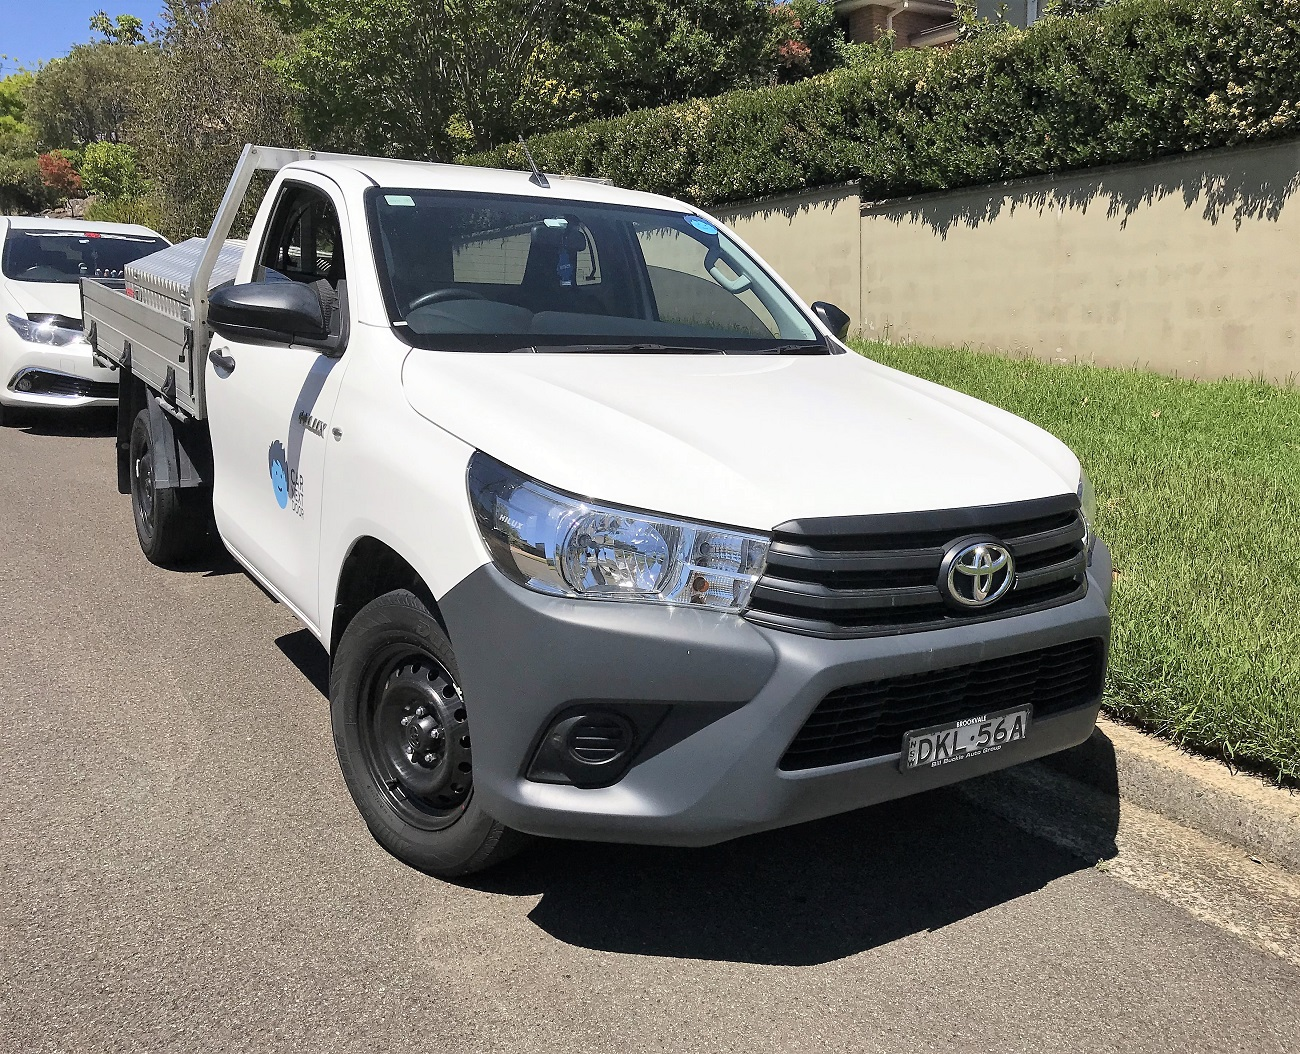 Picture of Jason John's 2016 Toyota Hilux